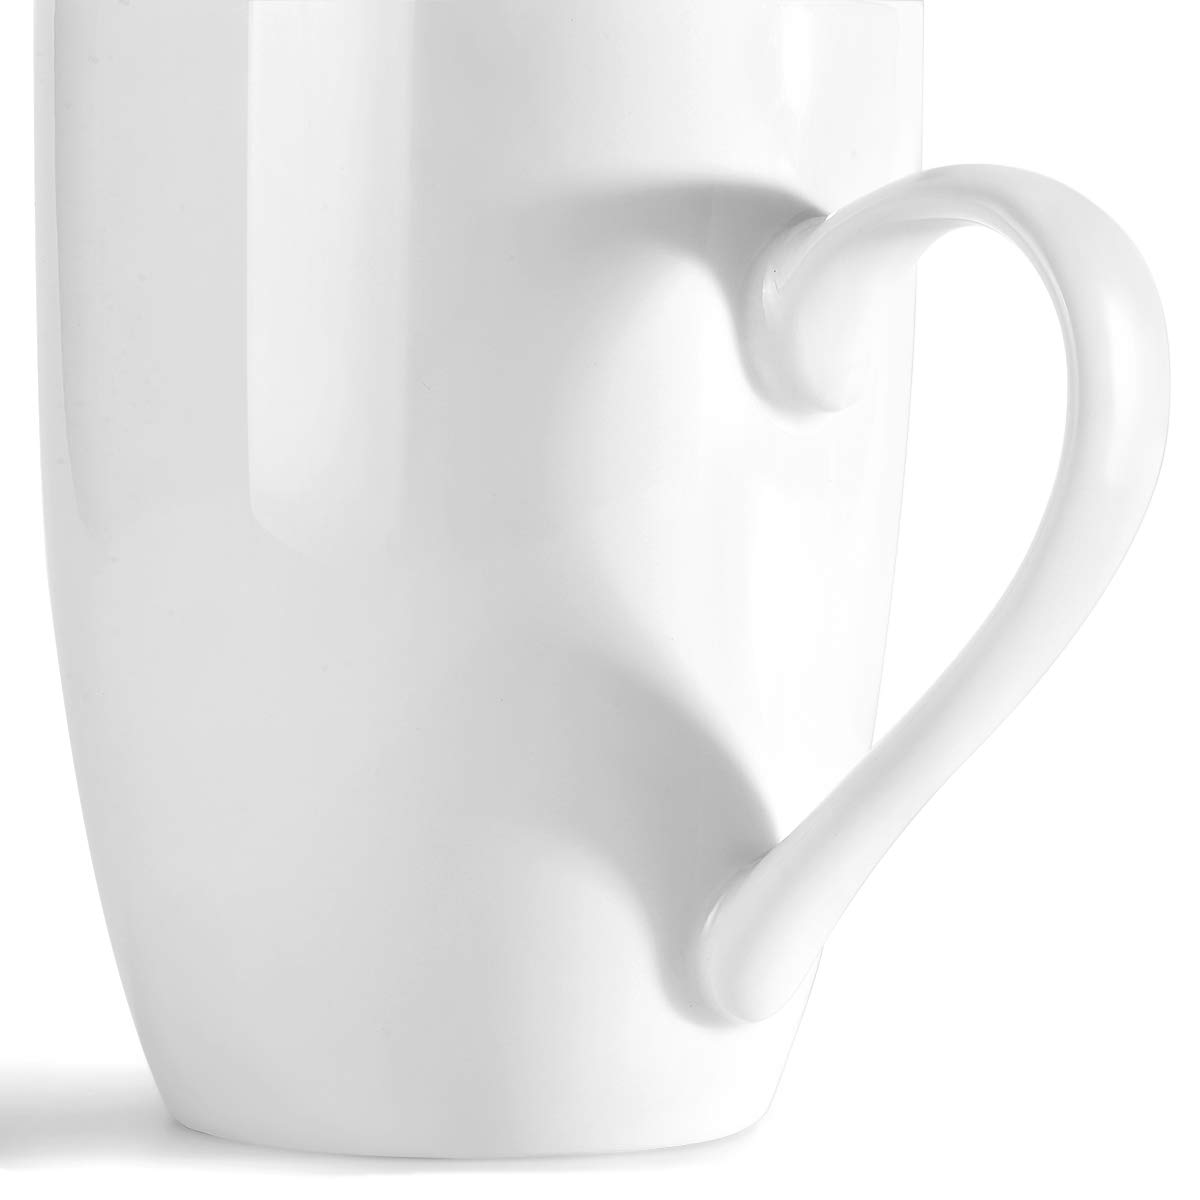 MIWARE 12 Ounce Porcelain Mugs, Set of 6, Tea and Coffee Mug Set, White